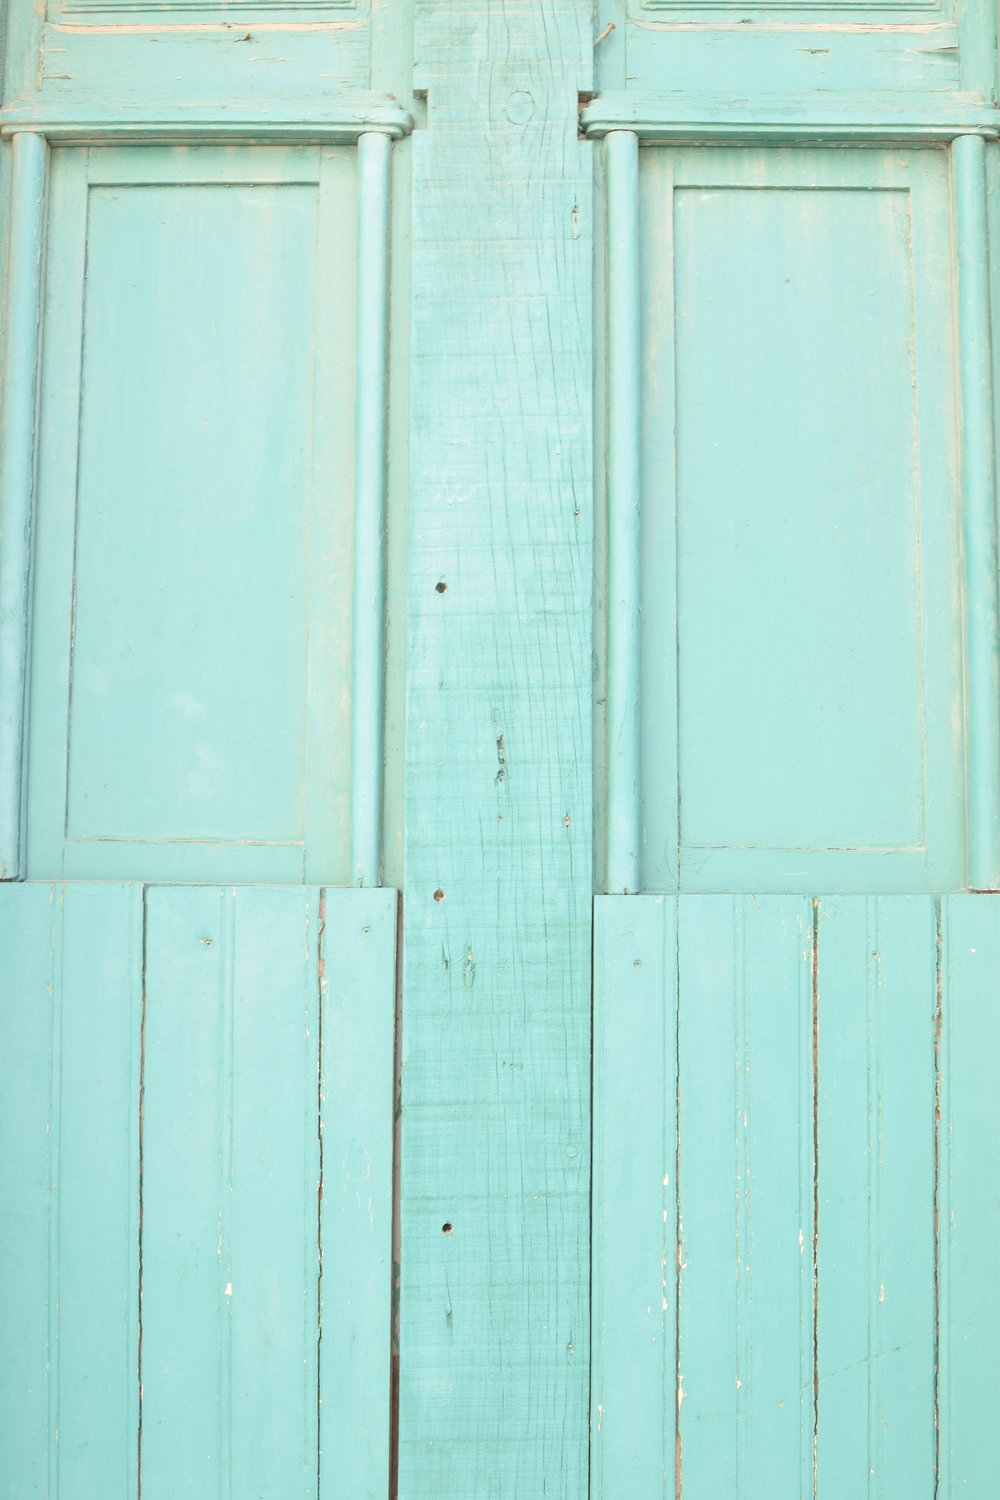 Turquoise door  | Finding colour inspiration in Lagos, Portugal | Soi 55 Travels8.JPG.JPG